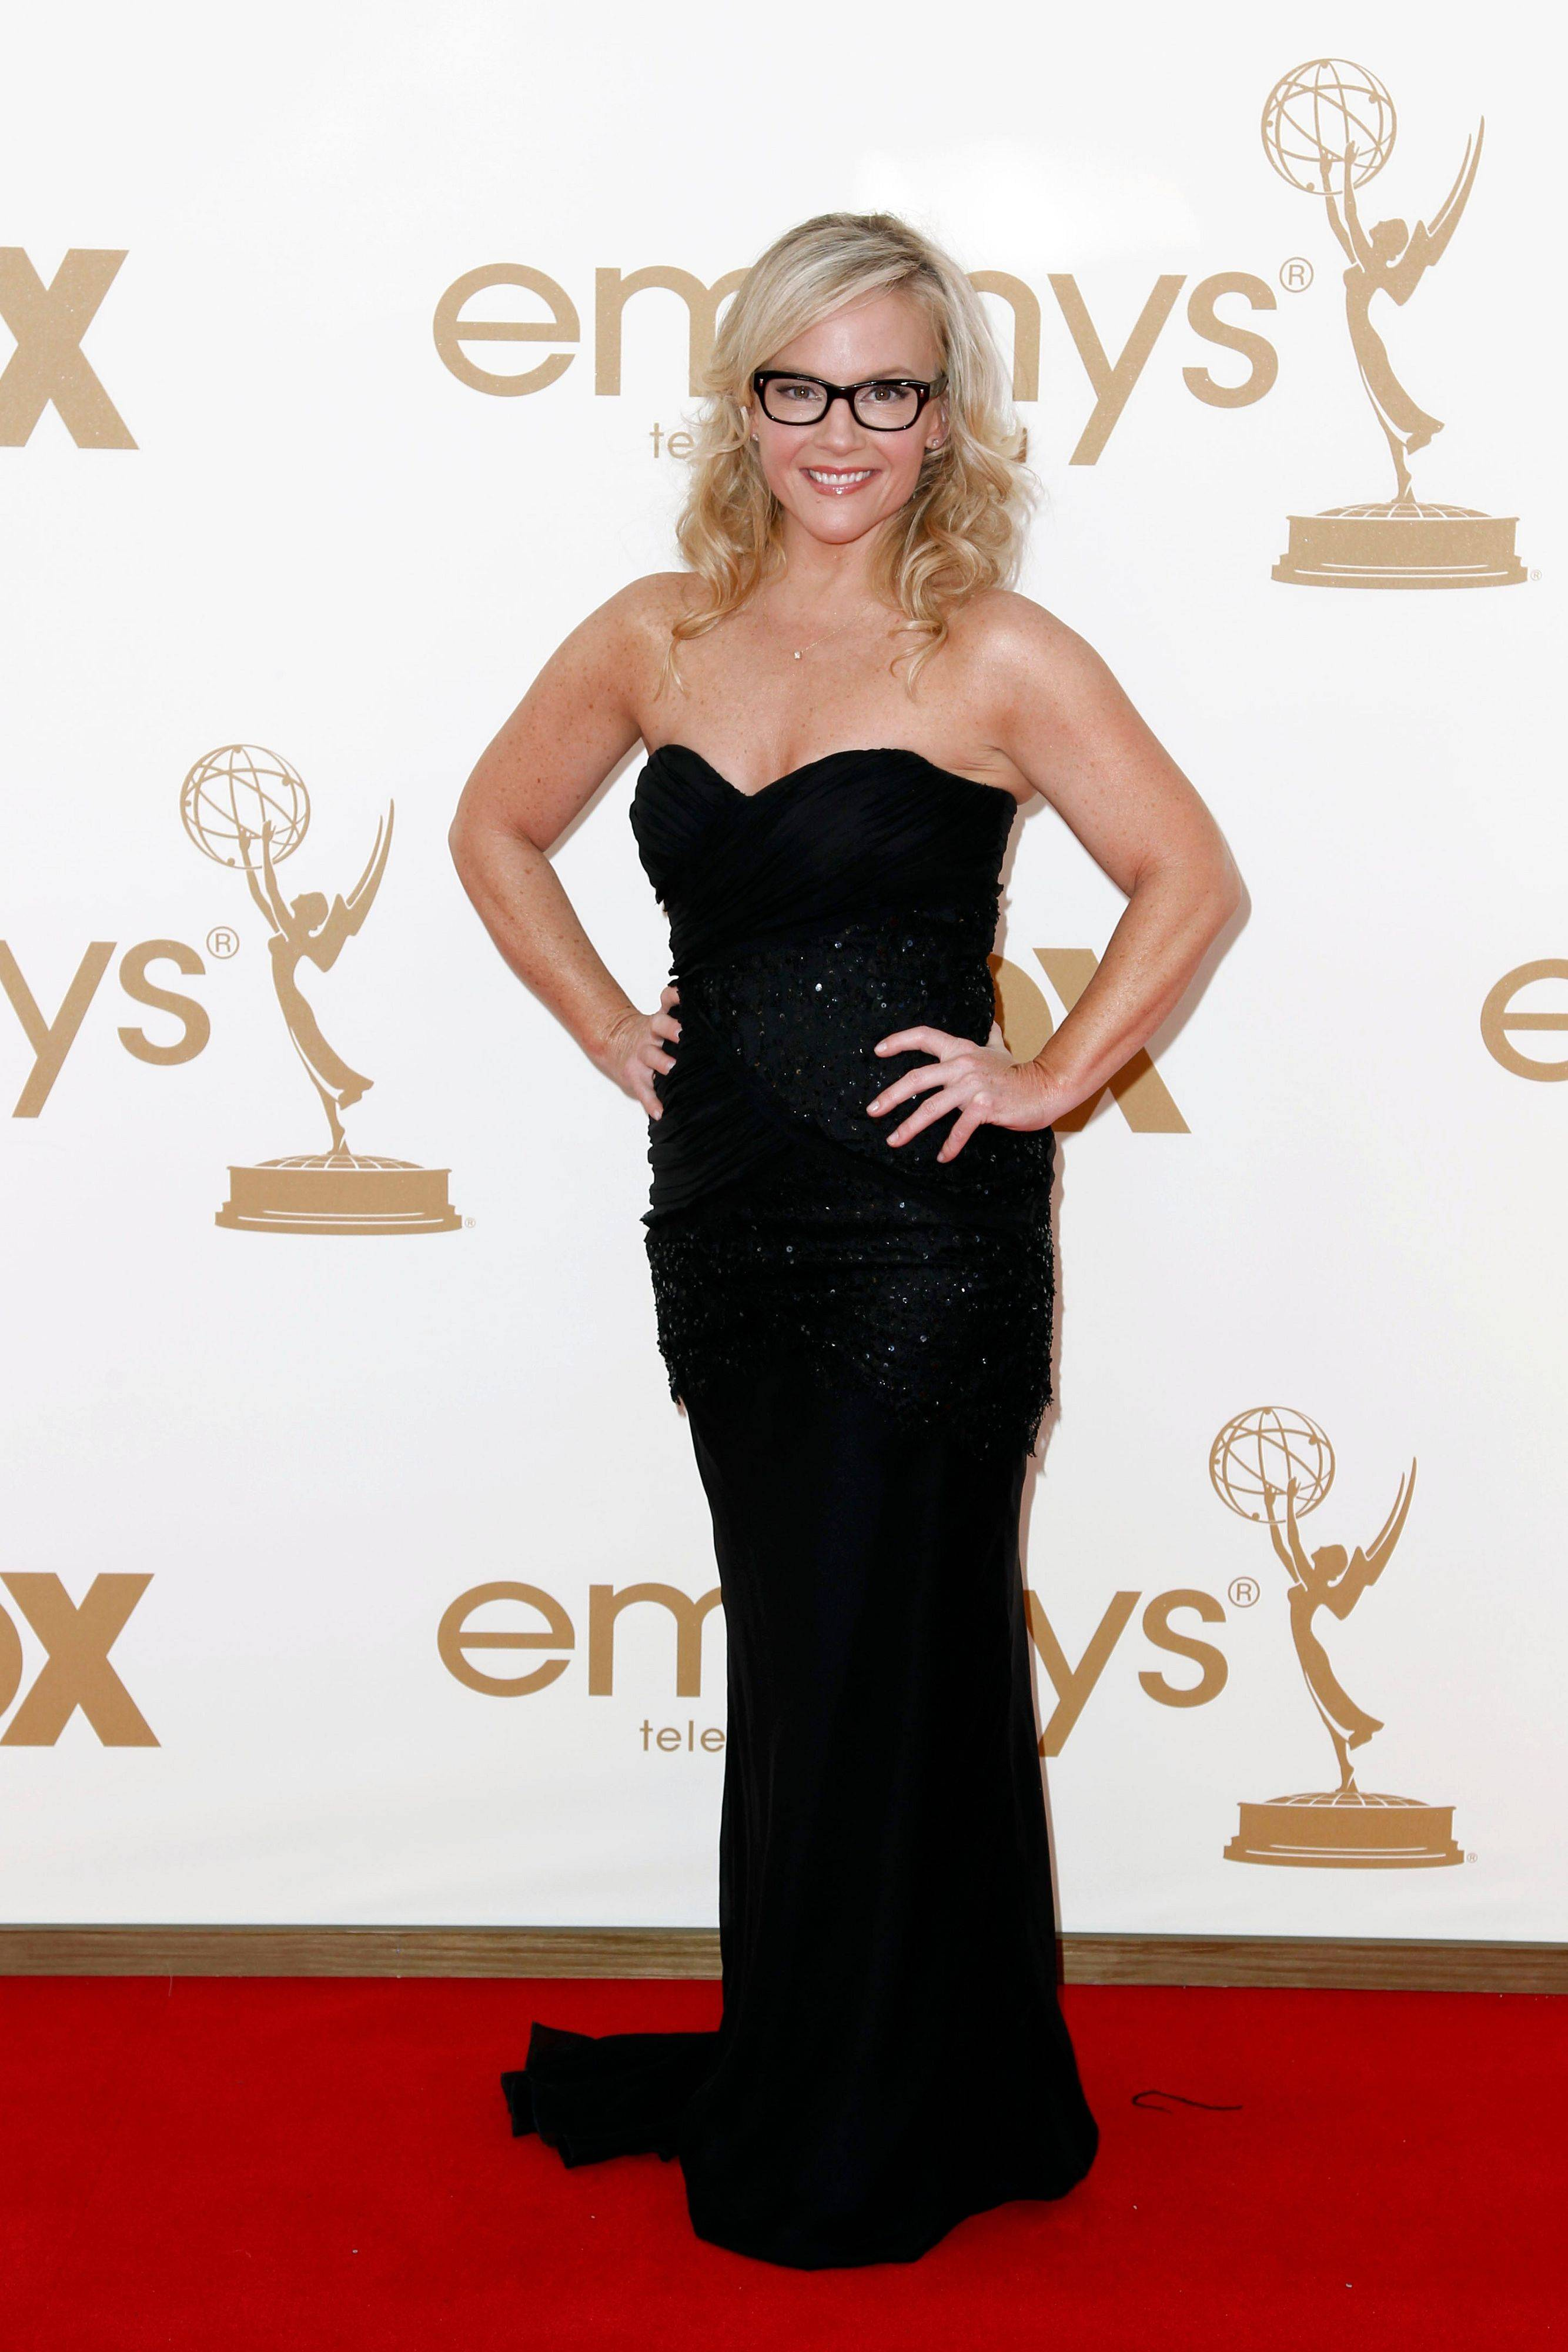 Actress Rachael Harris kept with the majority of stars and chose a dark strapless gown.